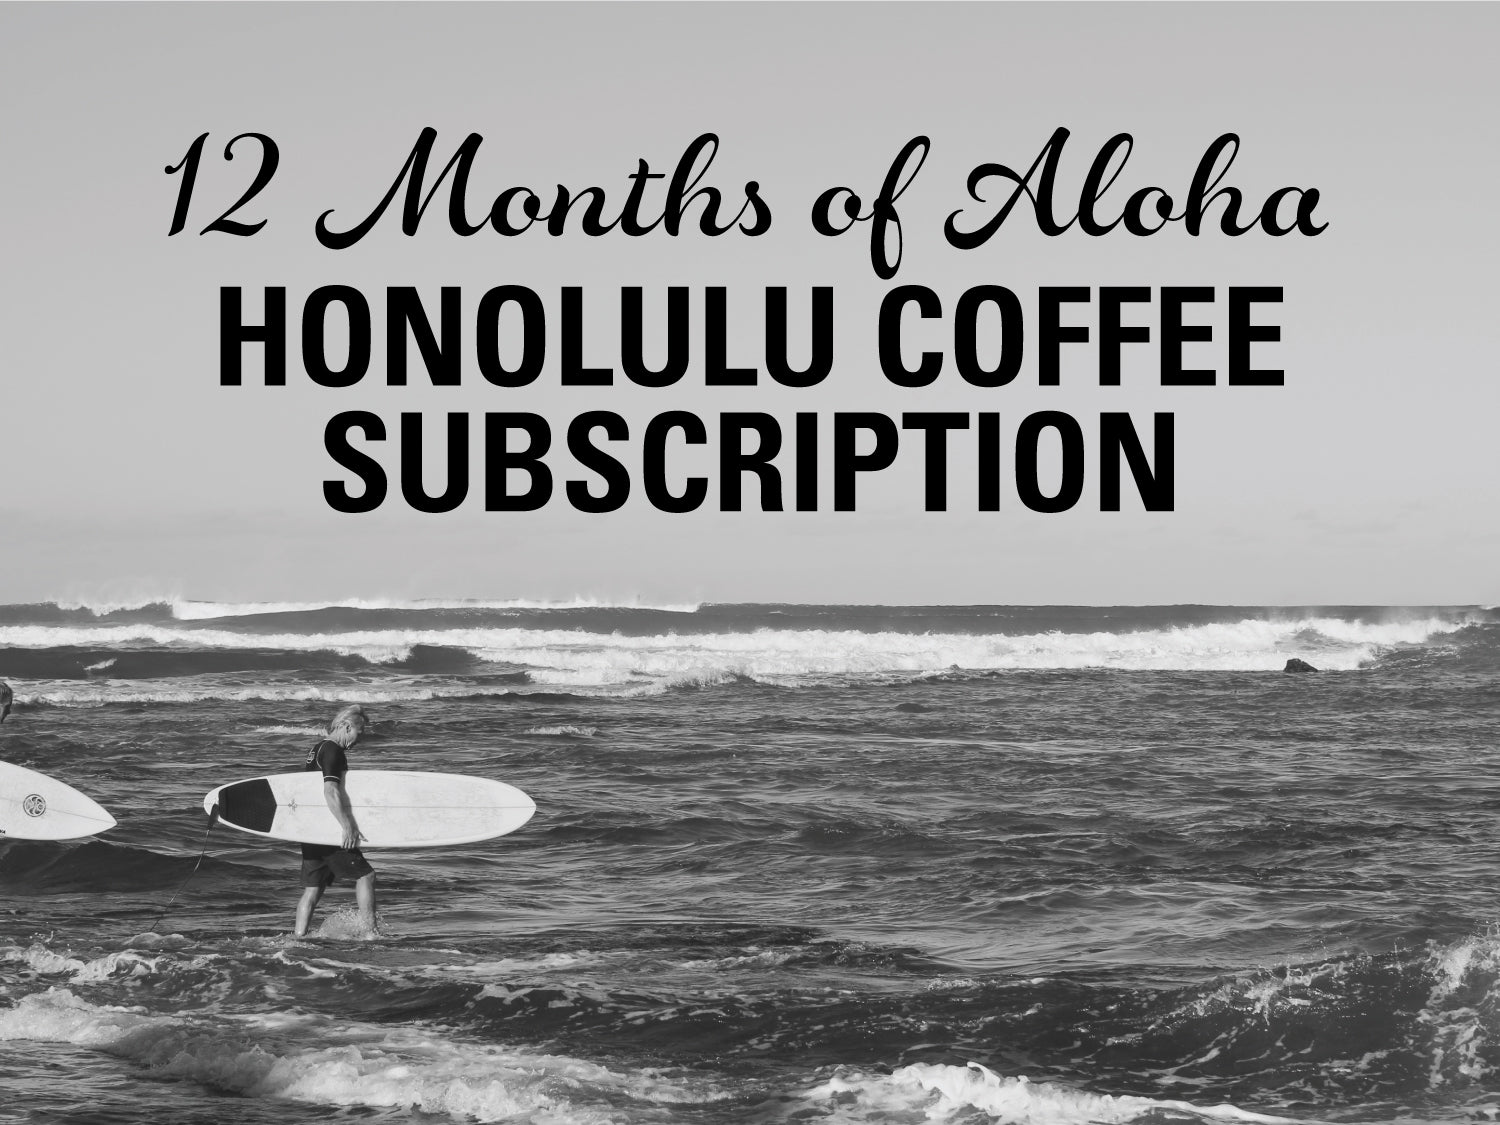 12 Months of Aloha Gift Subscriptions